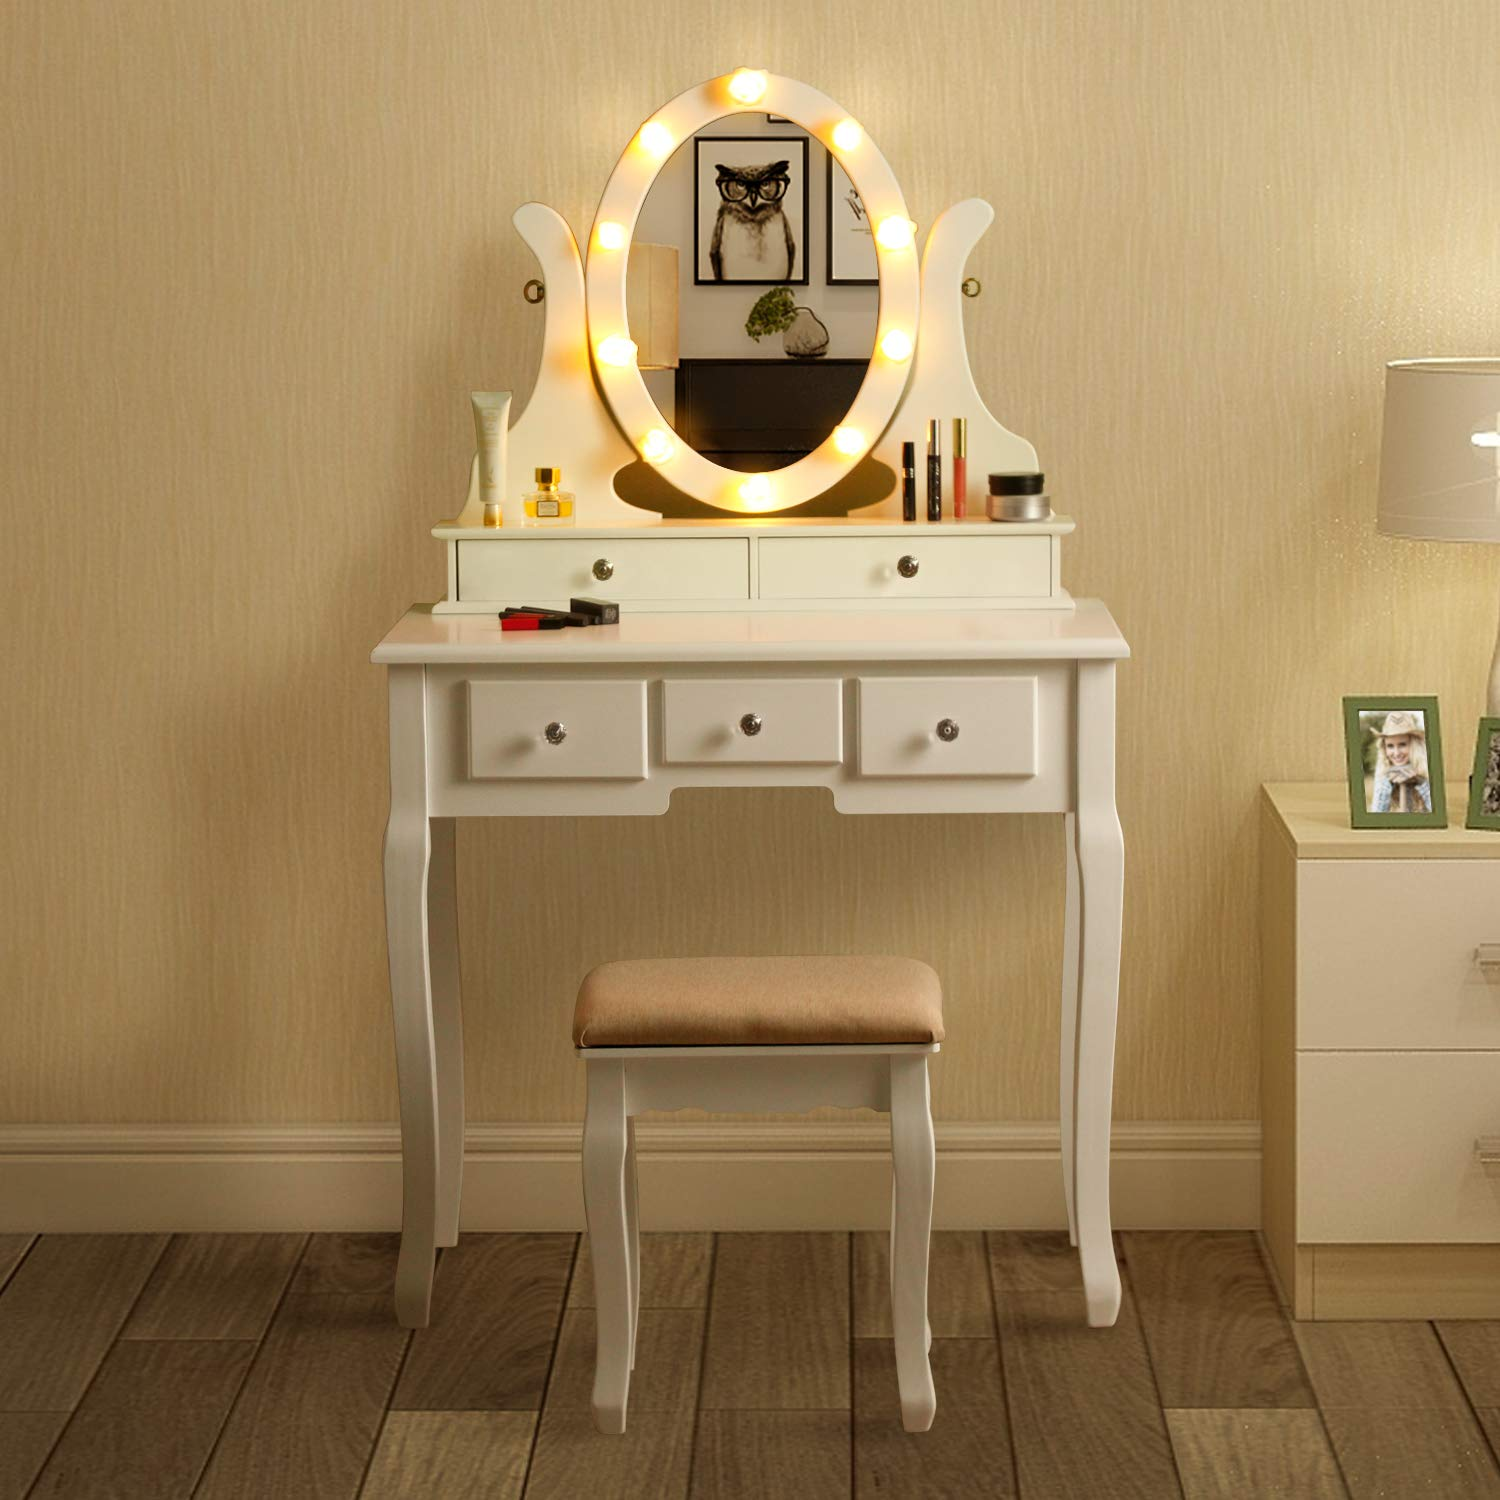 MAISMODA Vanity Table 10 LED Lights, 5 Drawers Makeup Dressing Desk with Cushioned Stool Set, White by MAISMODA